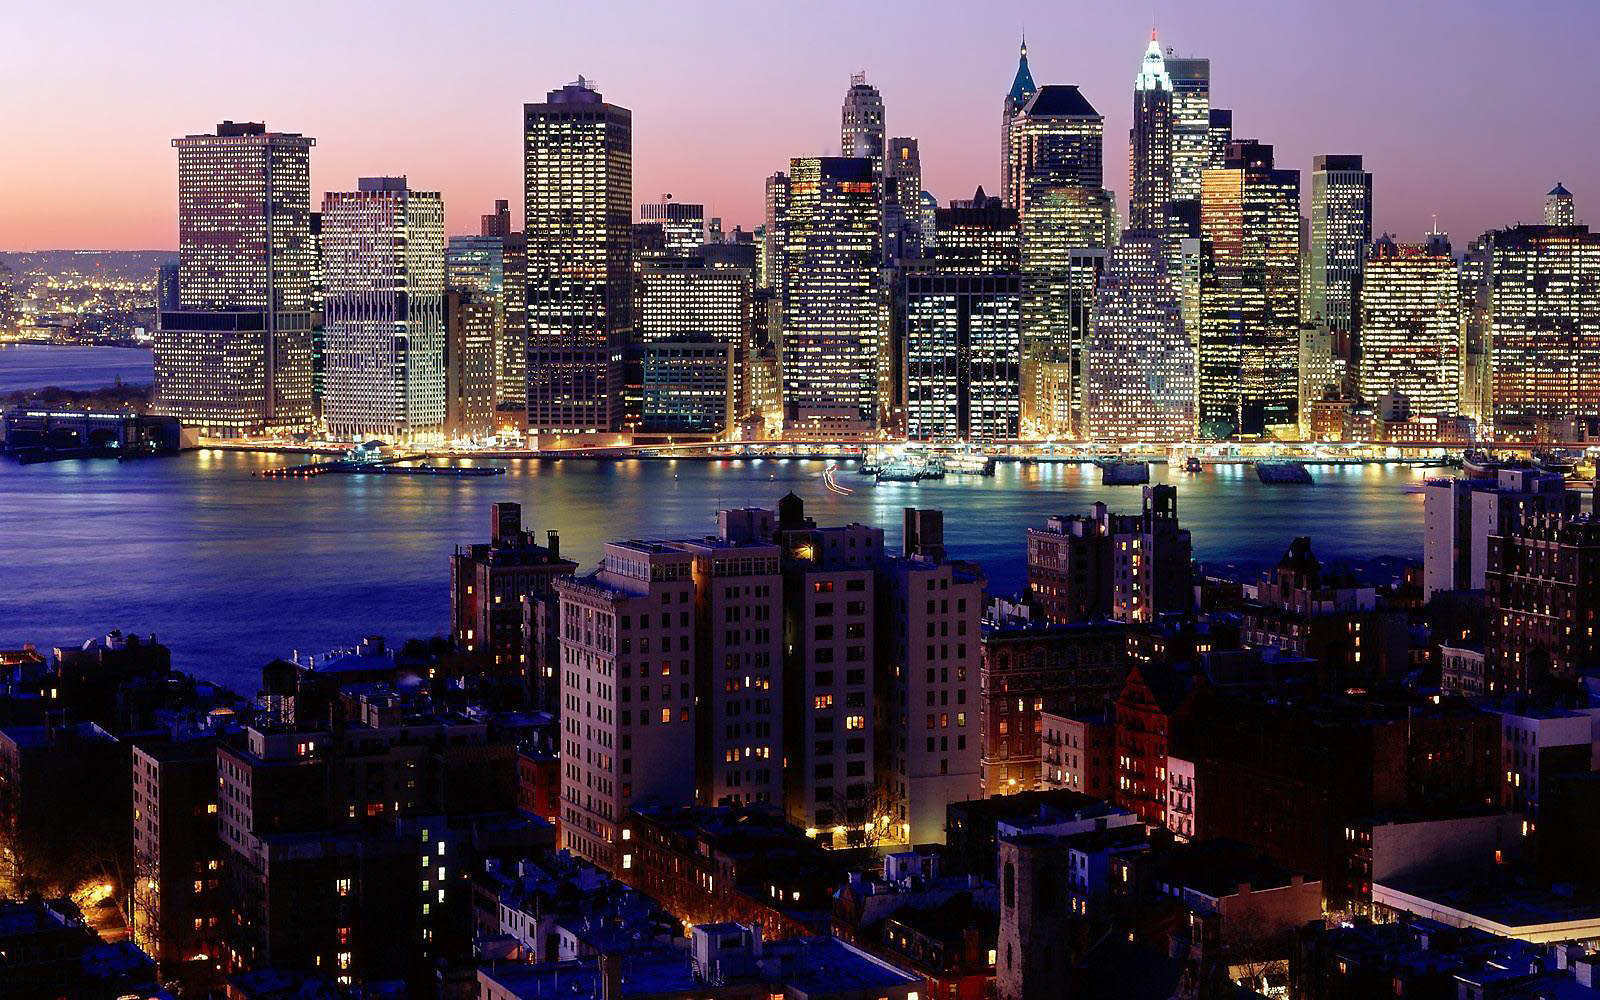 New york city images wallpaper sf wallpaper new york city wallpaper wallpapersafari voltagebd Image collections